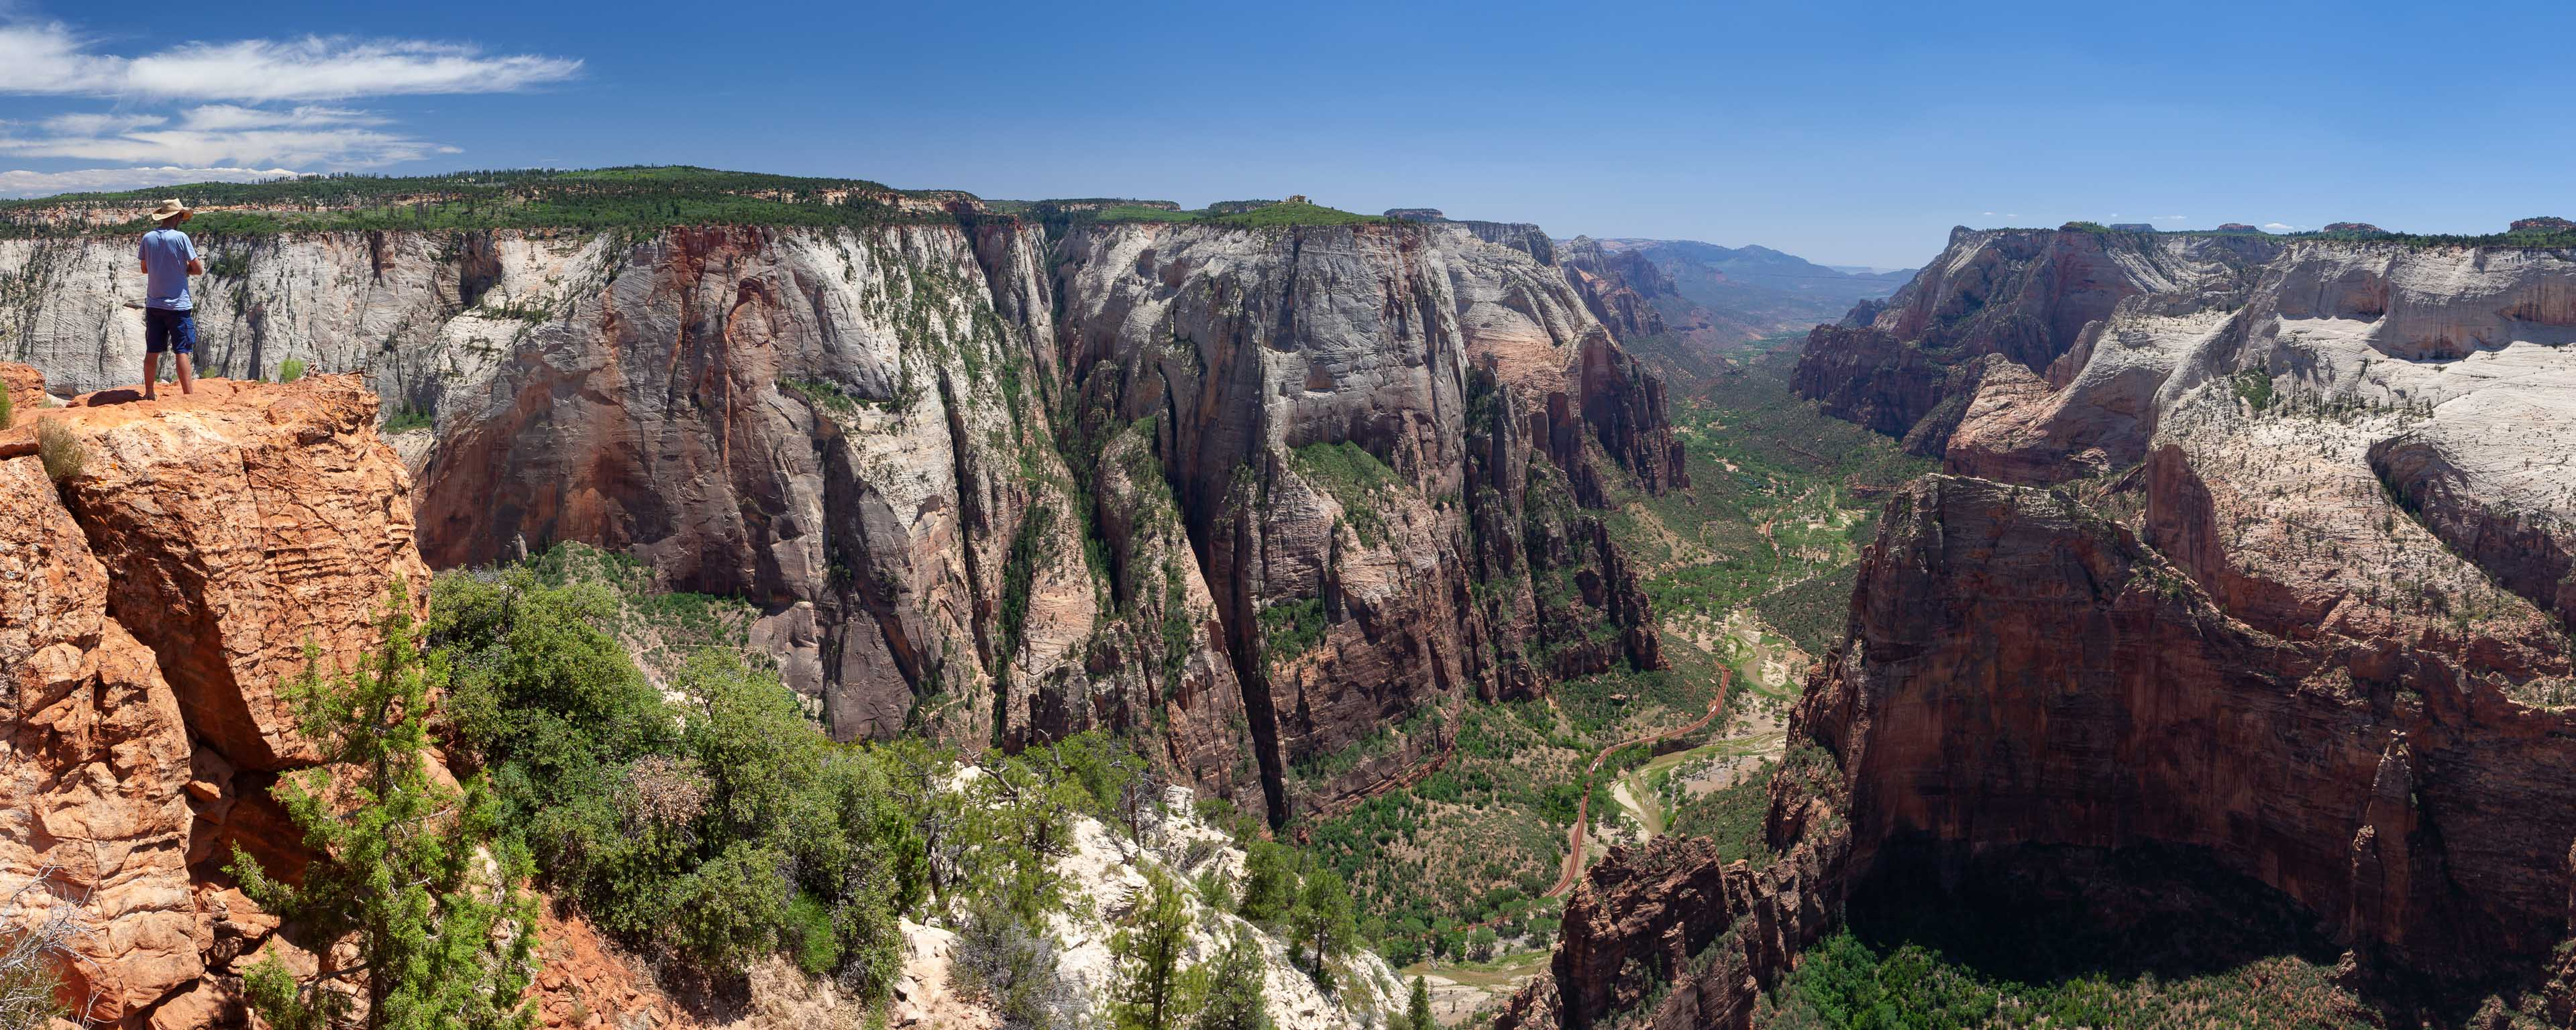 Zion Canyon from Observation Point